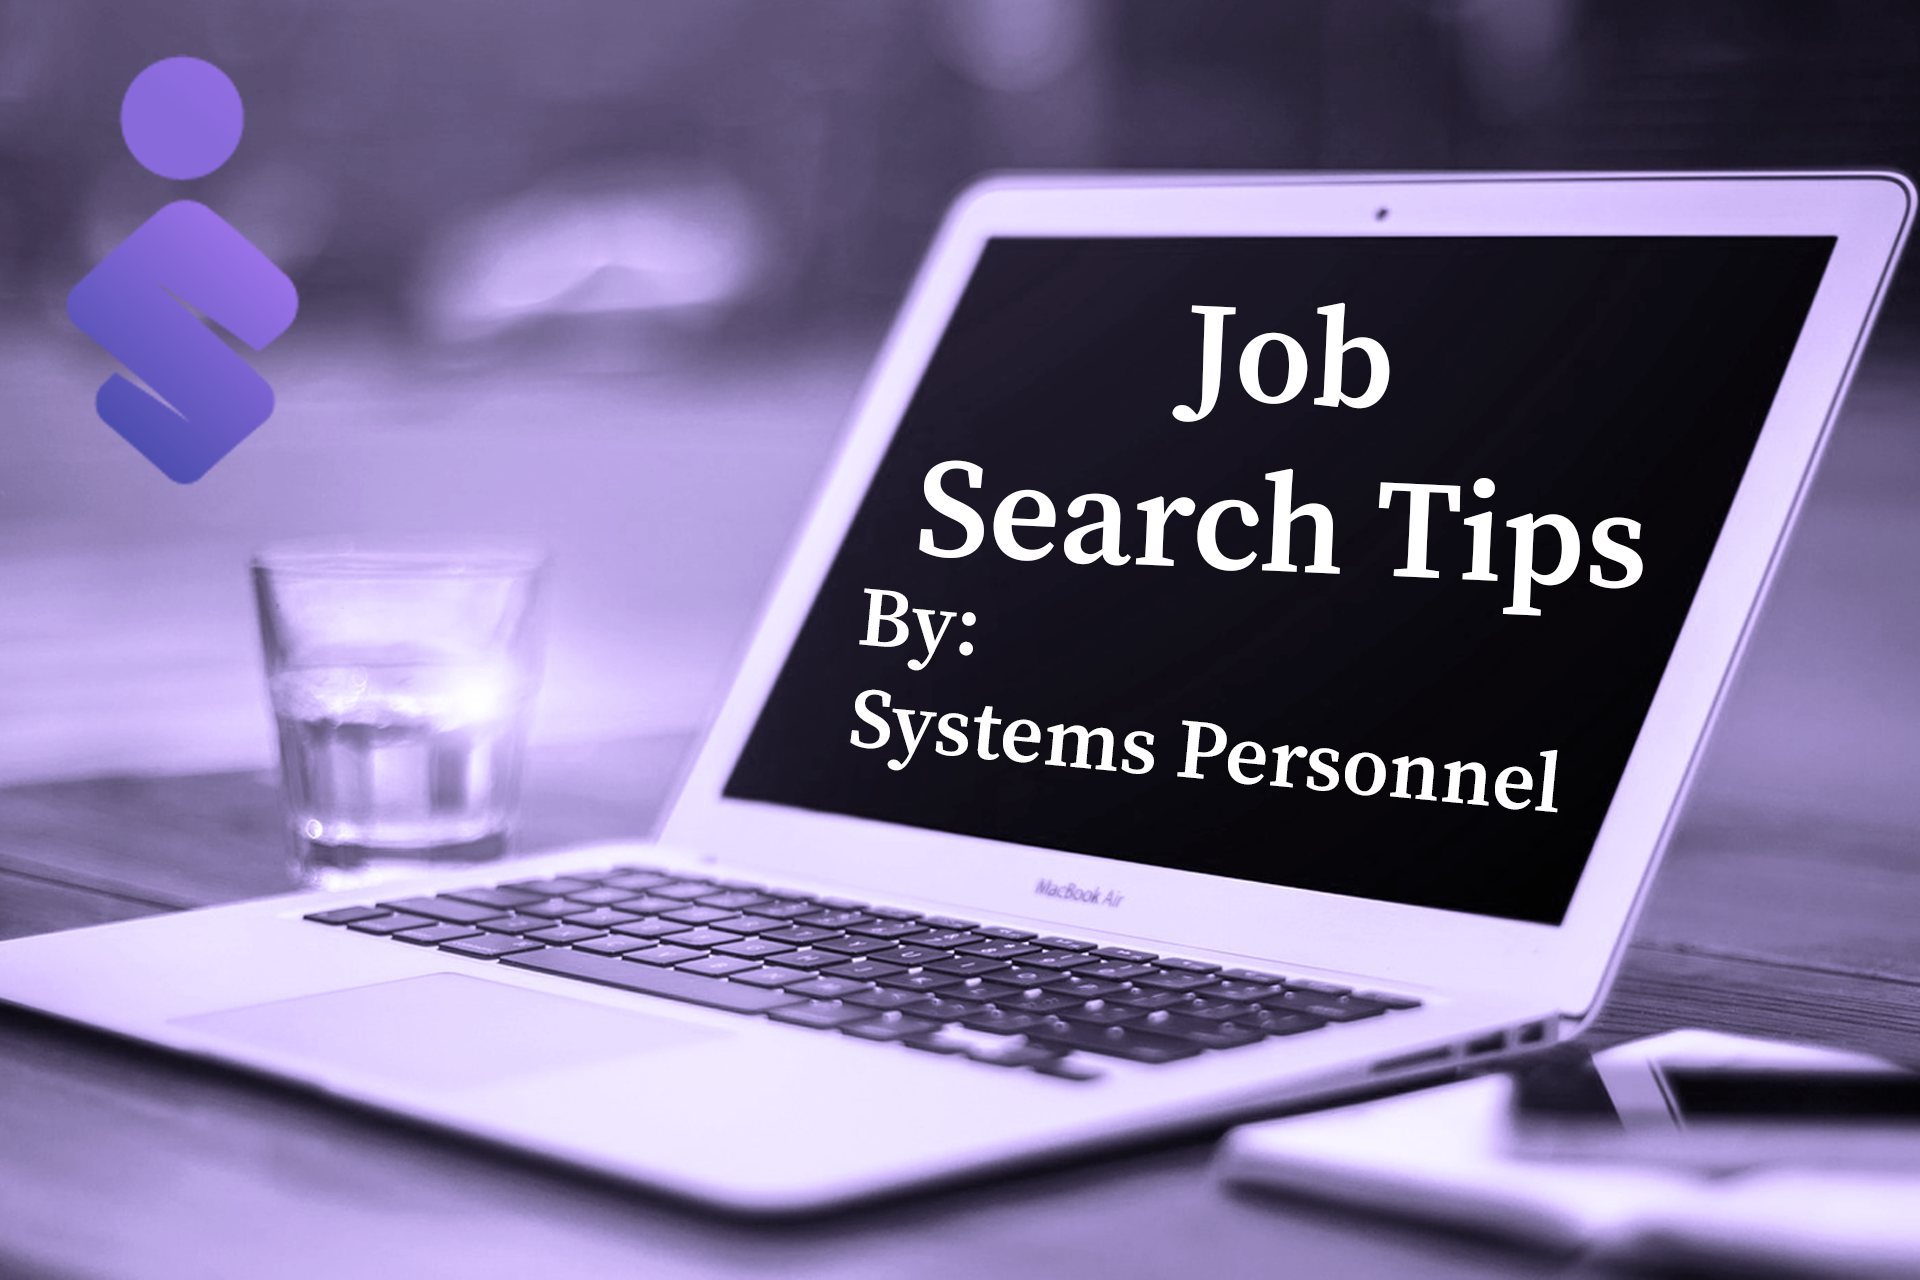 Job Search Tips - Thank you for Applying!